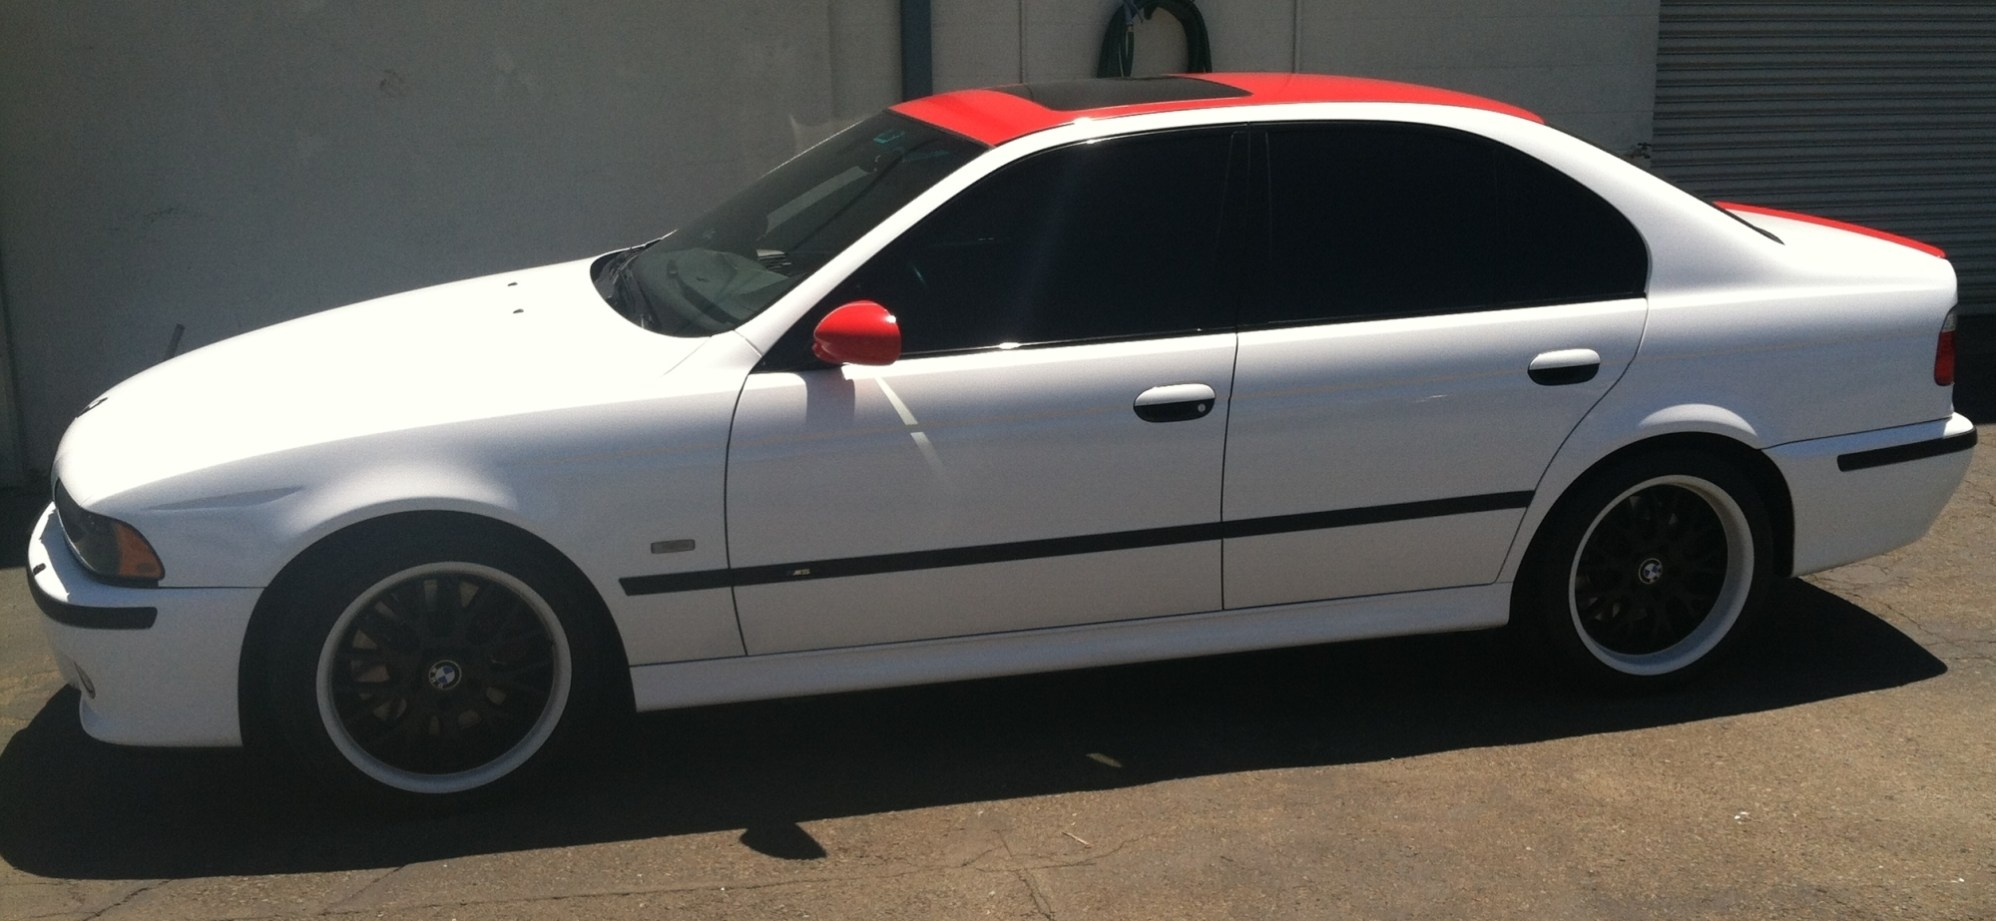 bmw white red roof color change-08